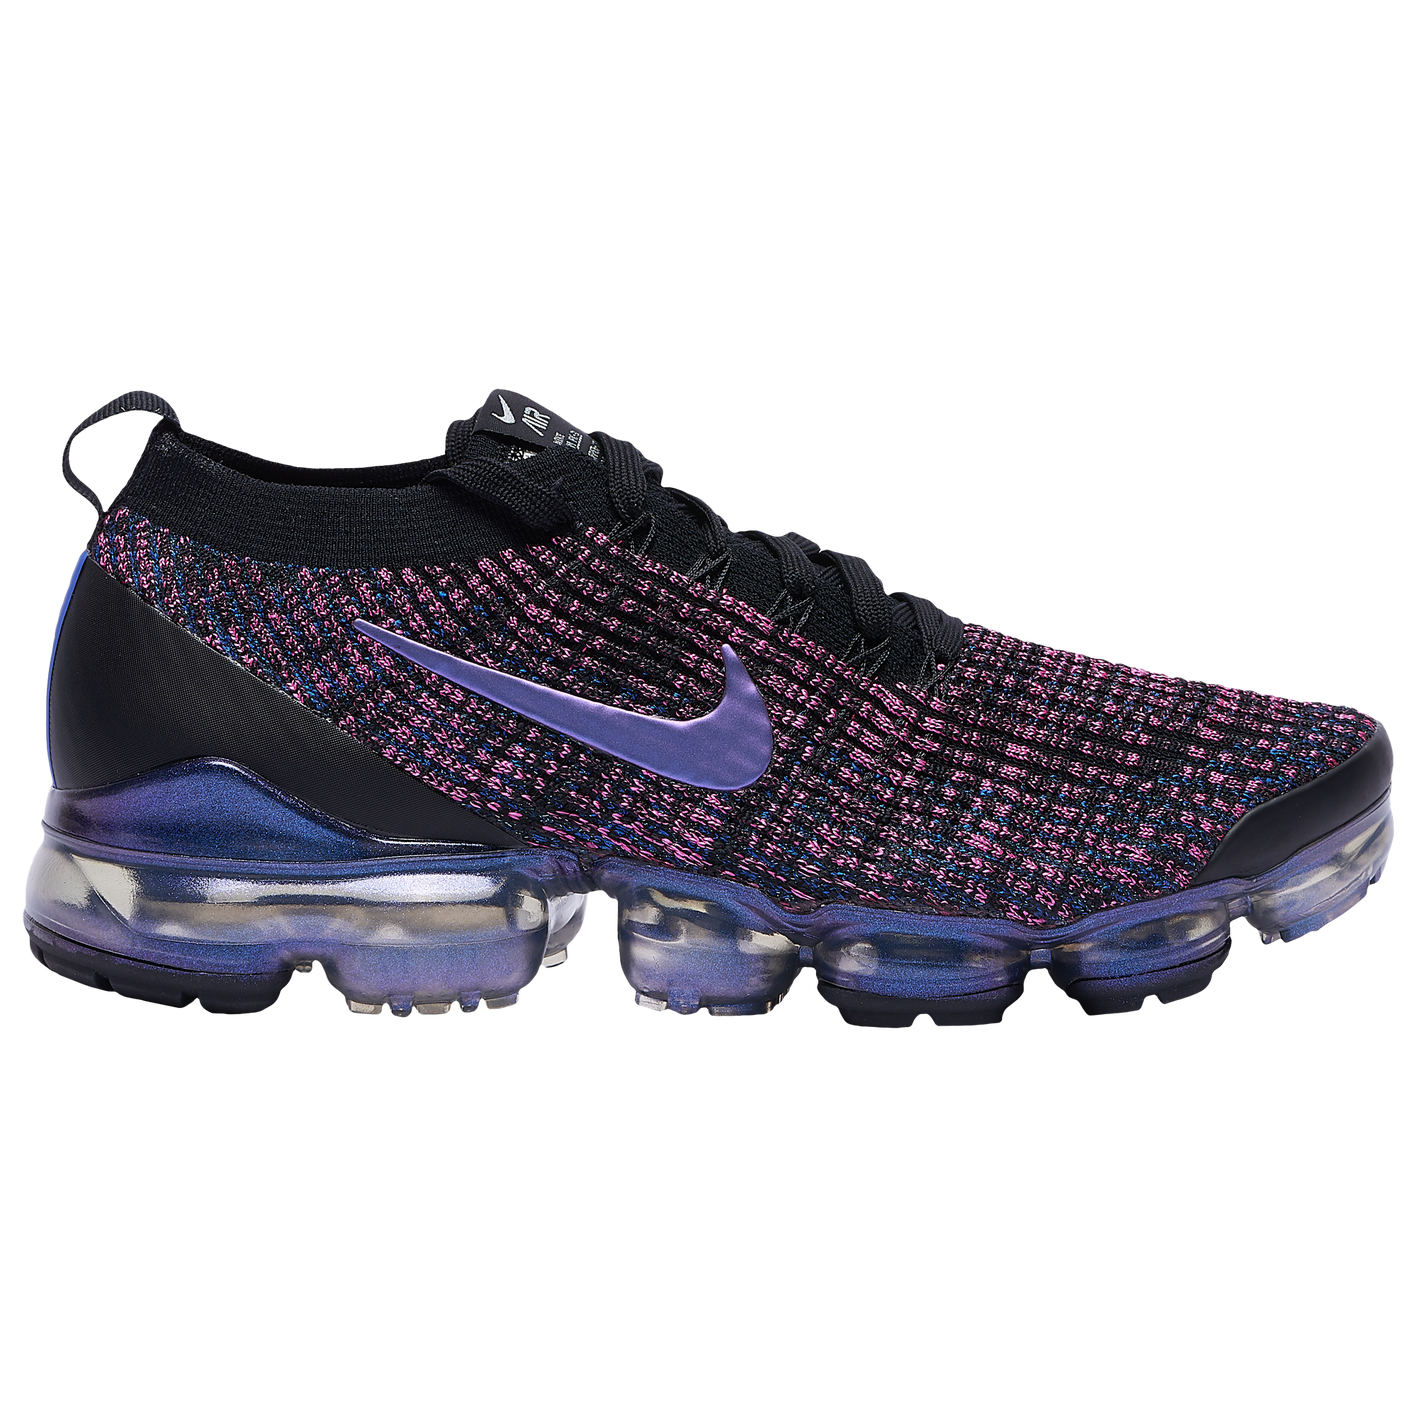 f6d2a5053d6 Nike Air Vapormax Flyknit 3 - Men s - Casual - Shoes - Black Racer ...